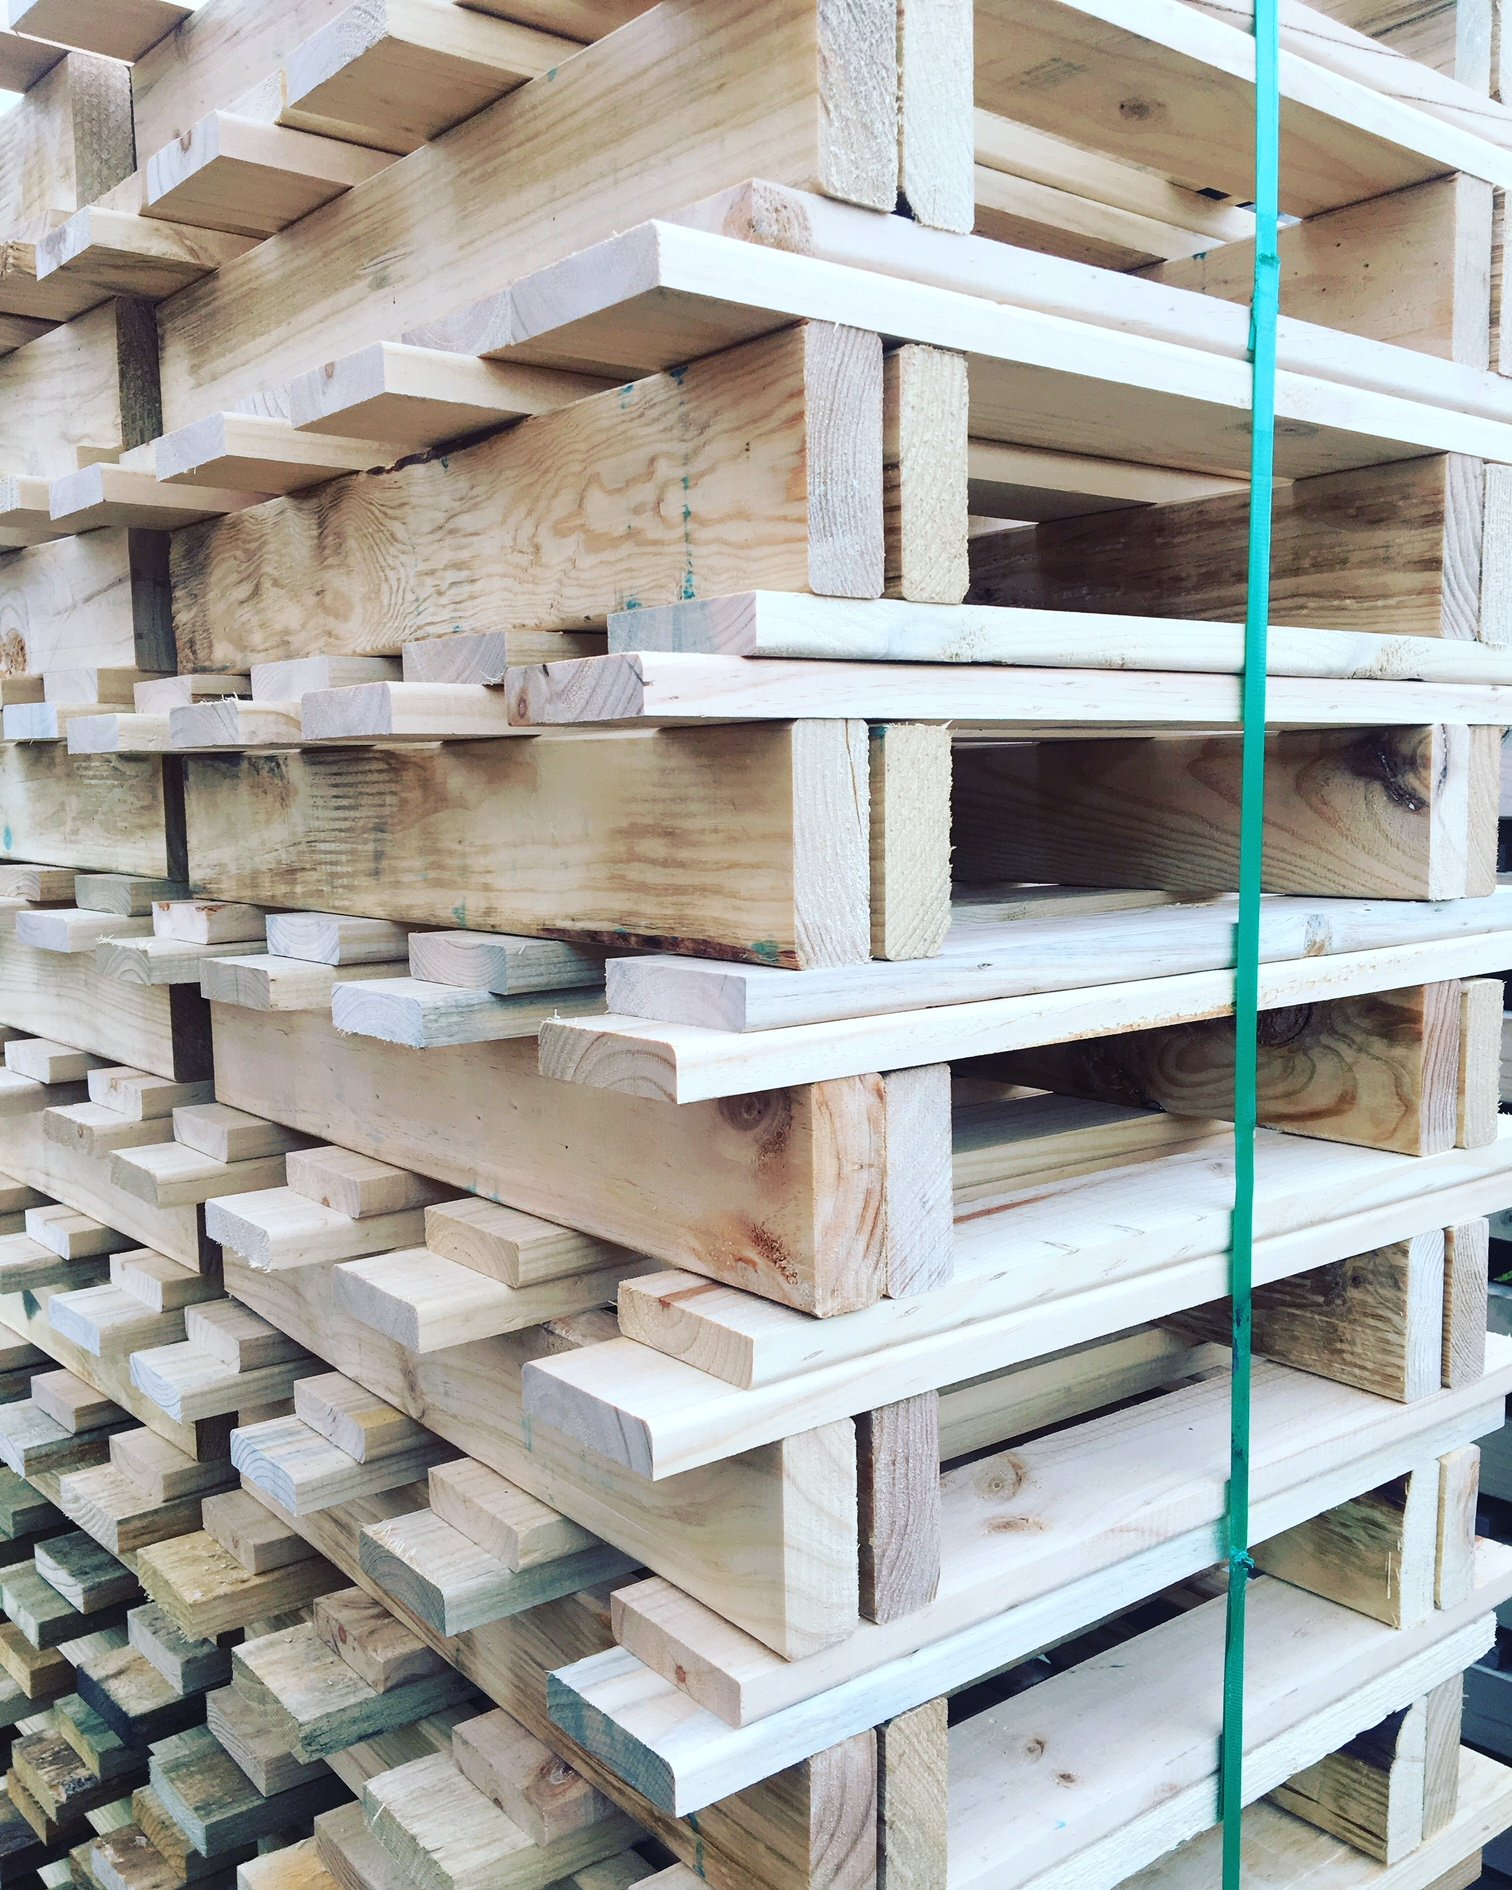 Wooden Pallets Suppliers in Perth   1/2 Price Pallets